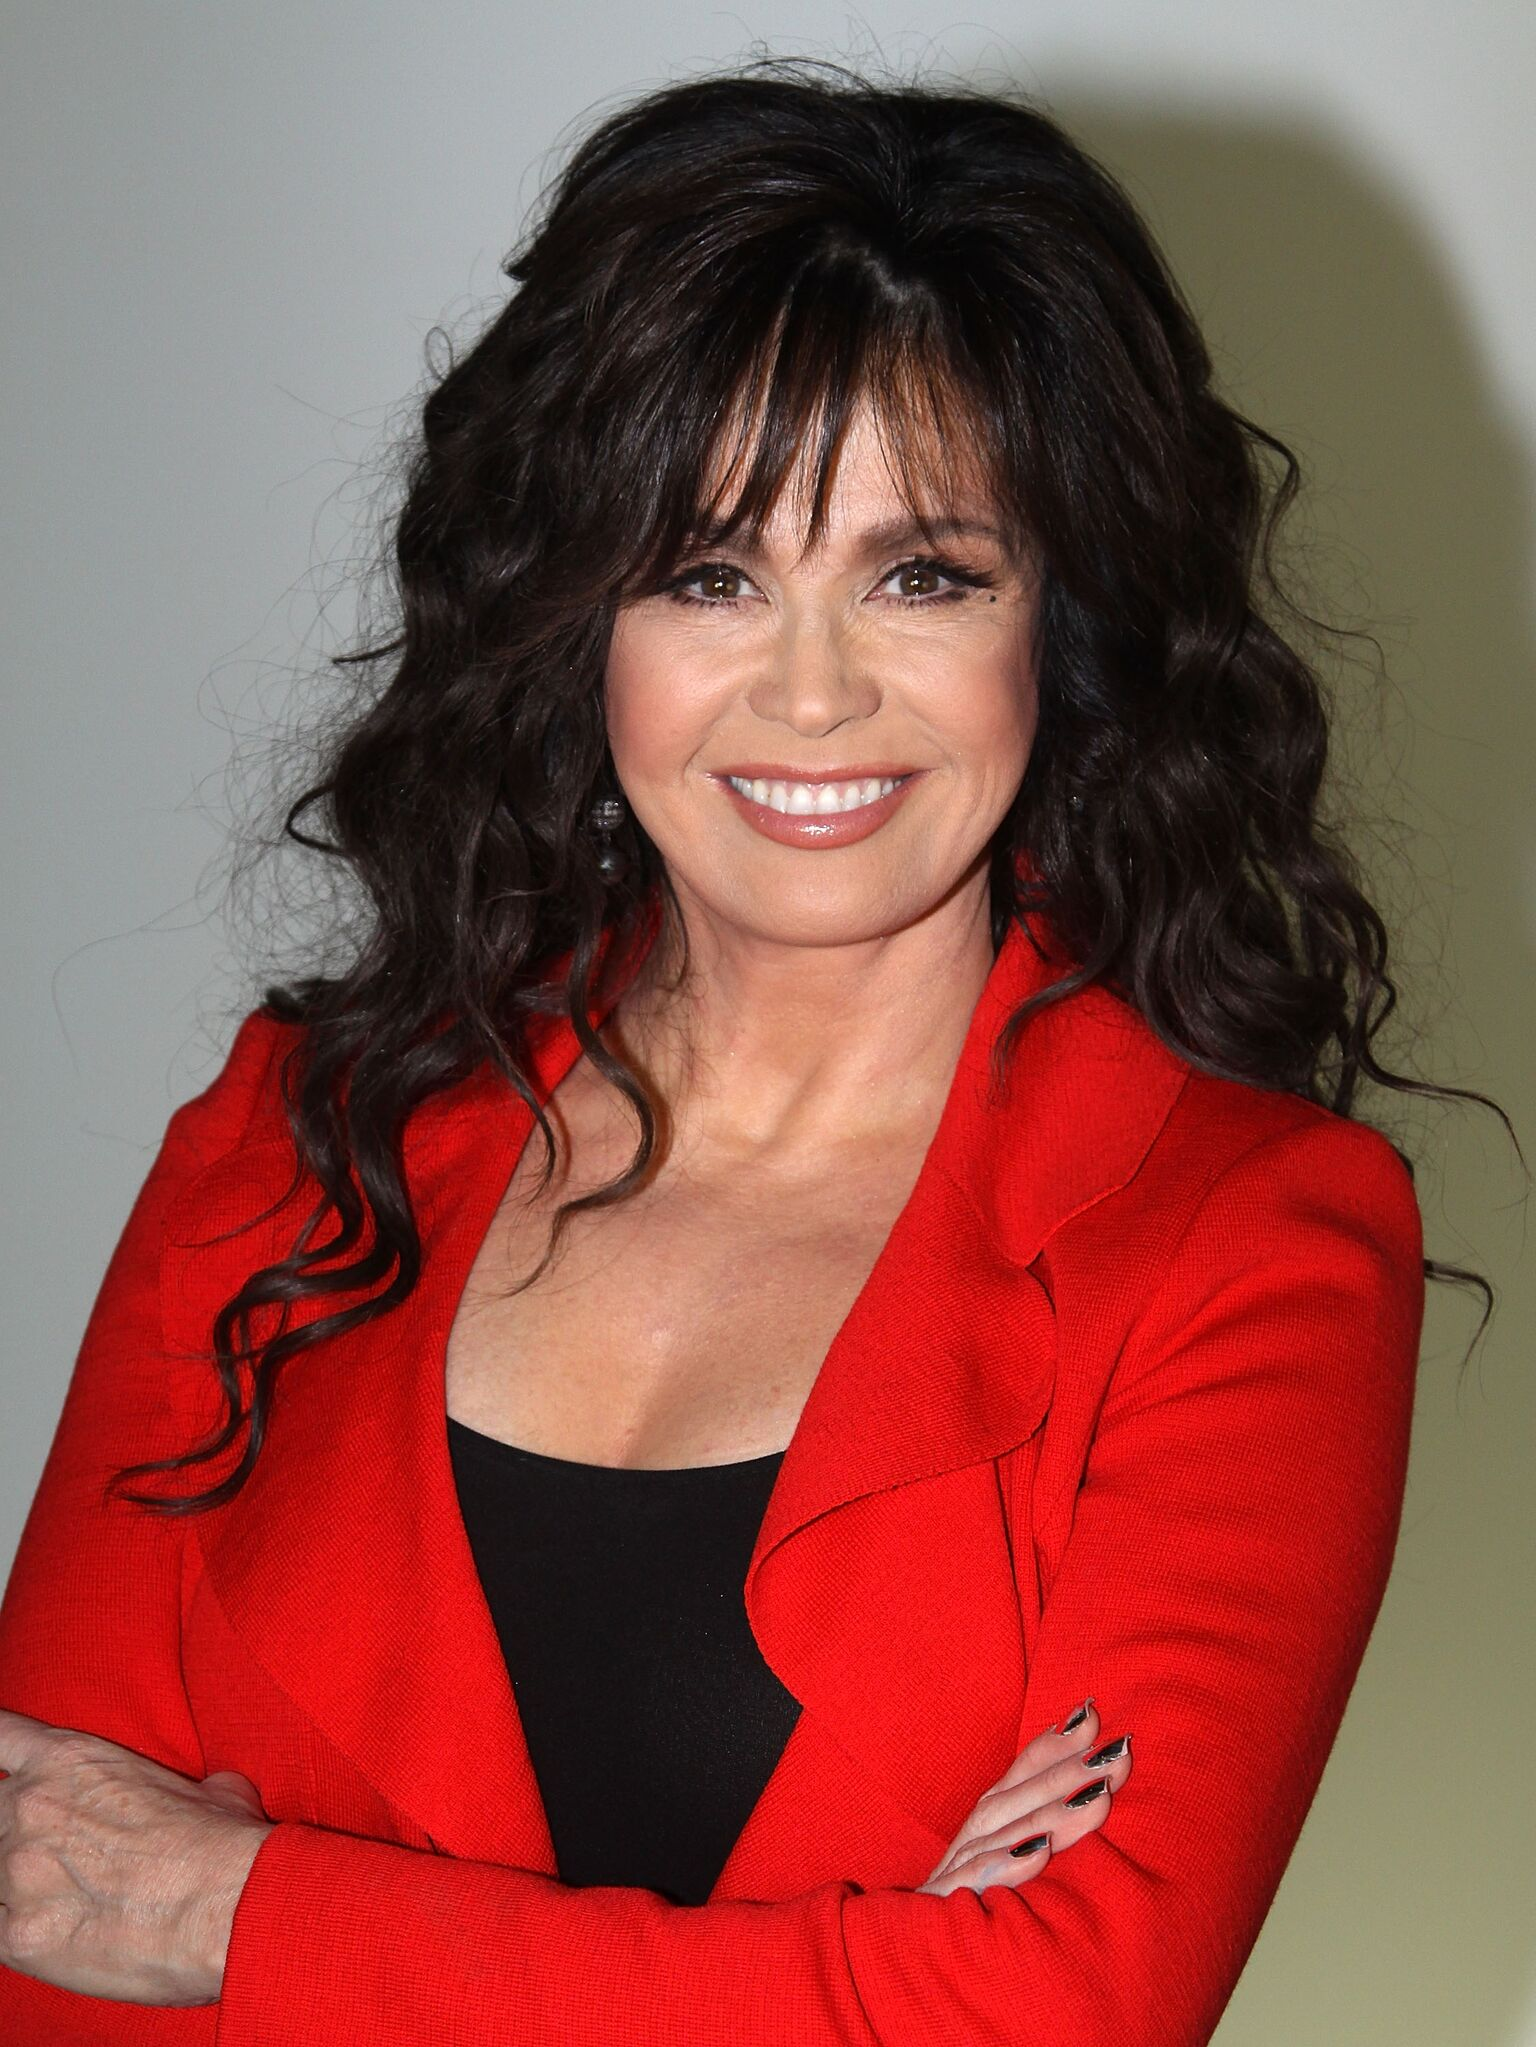 Marie Osmond  le 8 décembre 2010 à New York | Photo: Getty Images